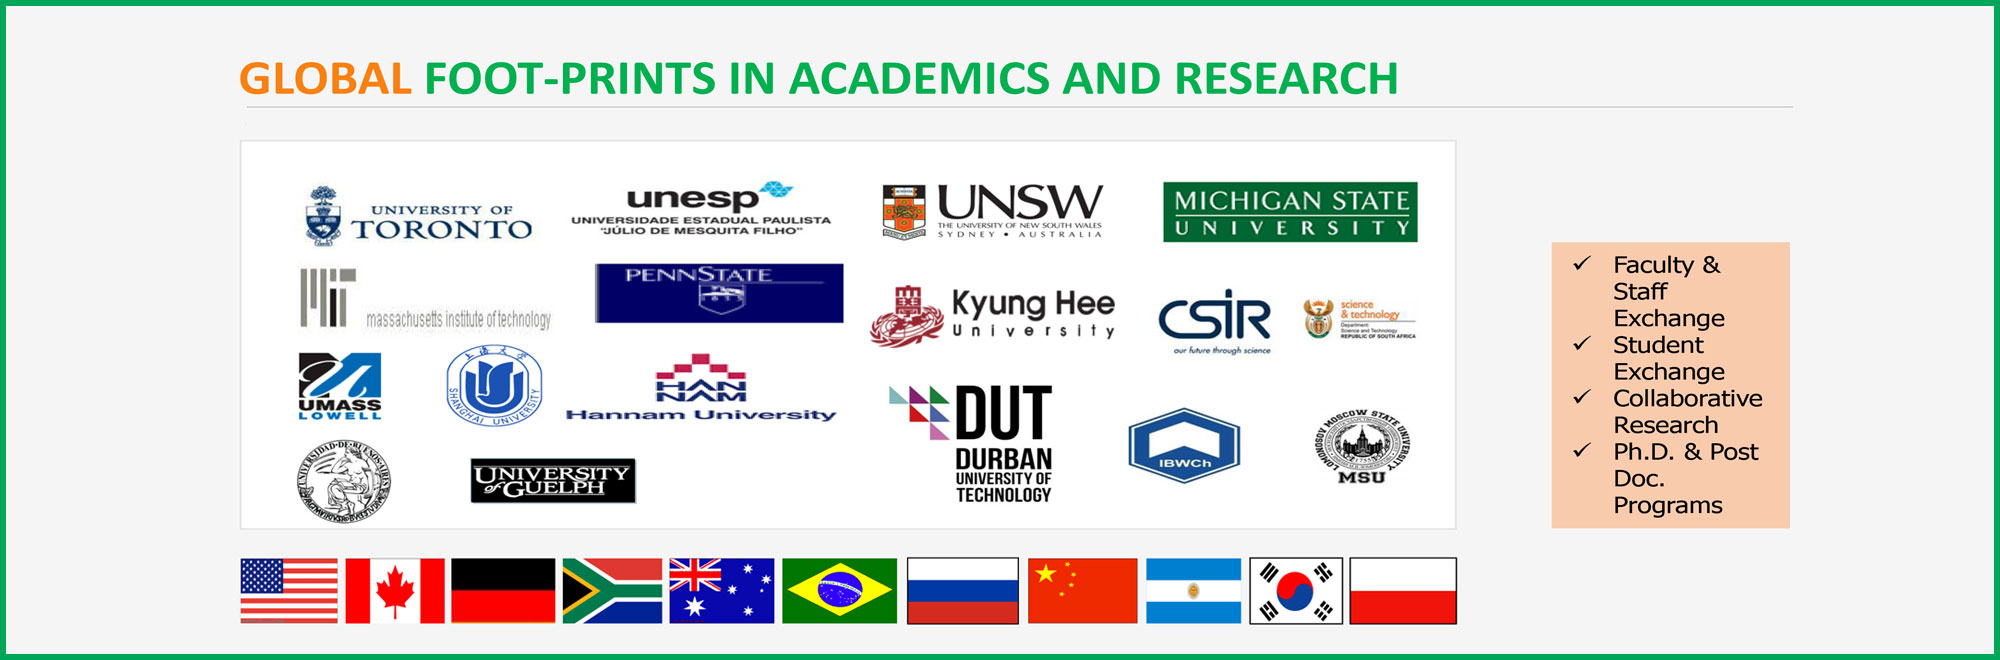 GLOBAL FOOT-PRINTS IN ACADEMICS AND RESEARCH